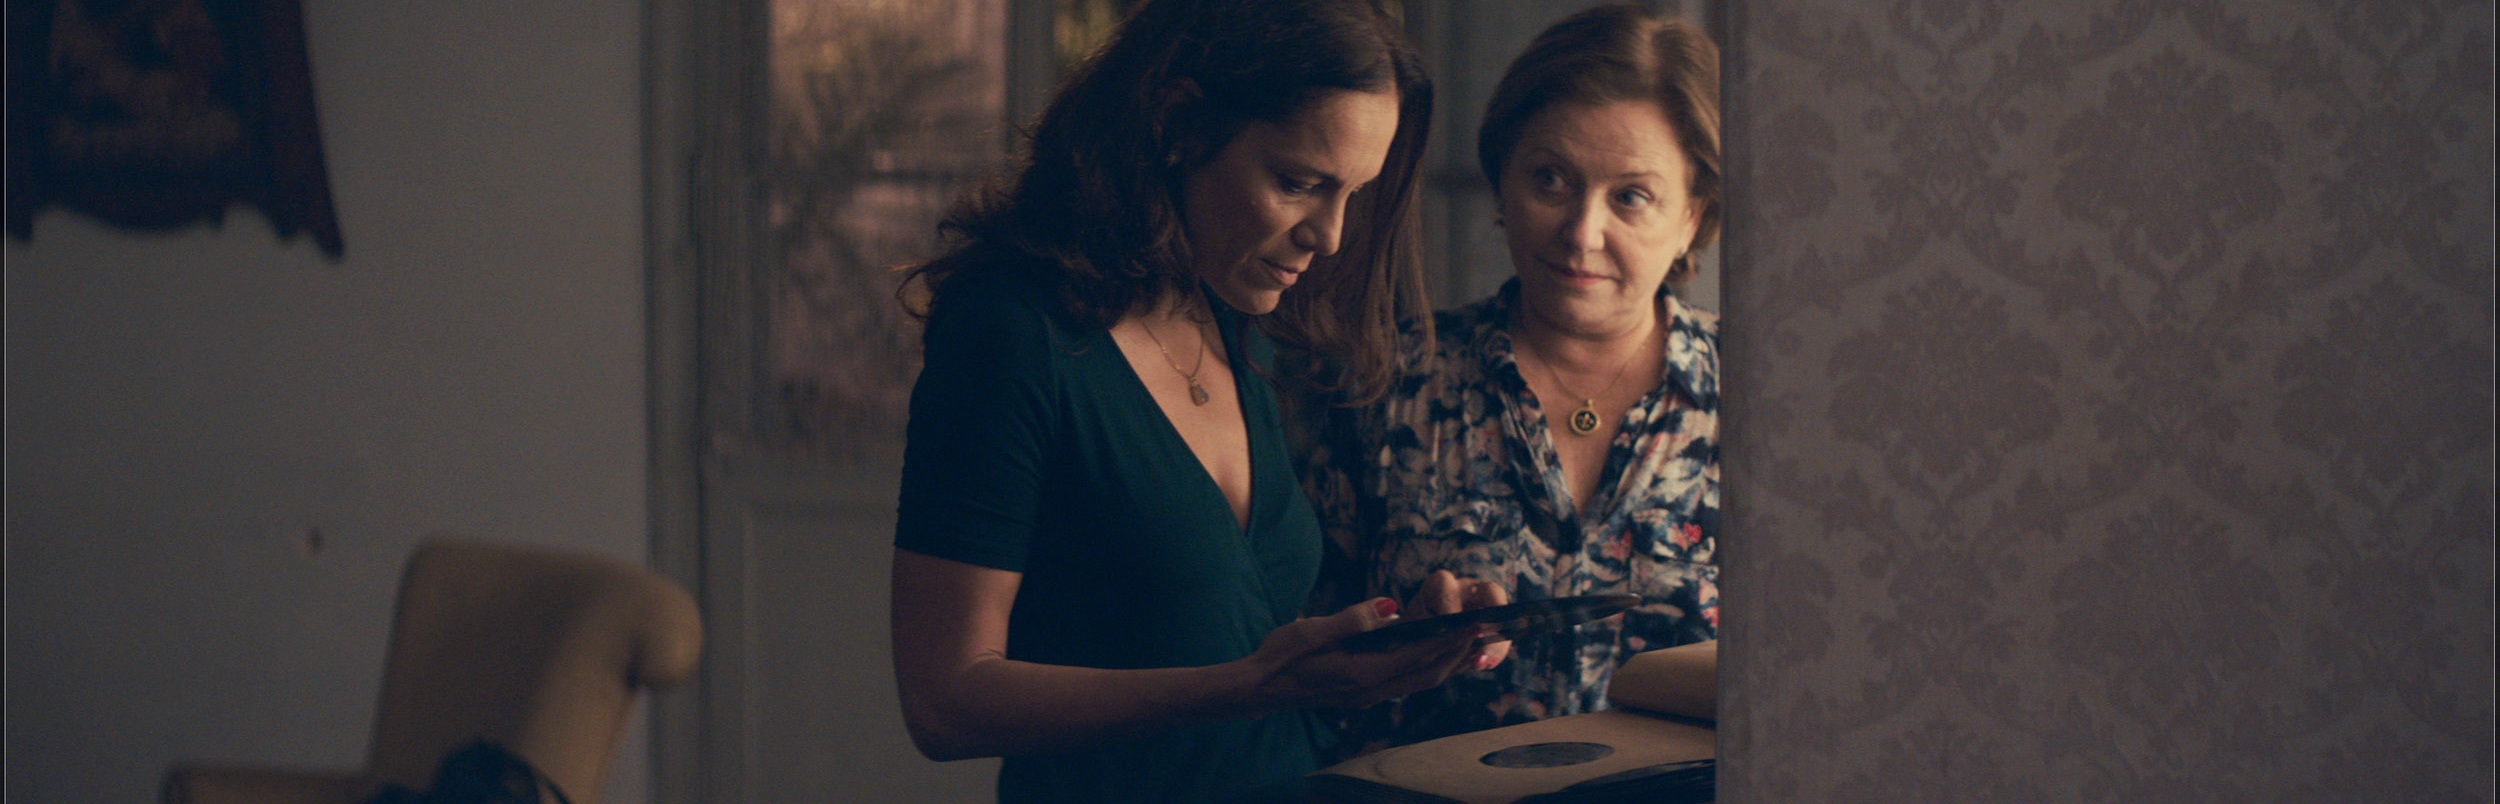 10. THE HEIRESSES / LAS HEREDERAS  Marcelo Martinessi, Paraguay/Uruguay/Germany/Brazil